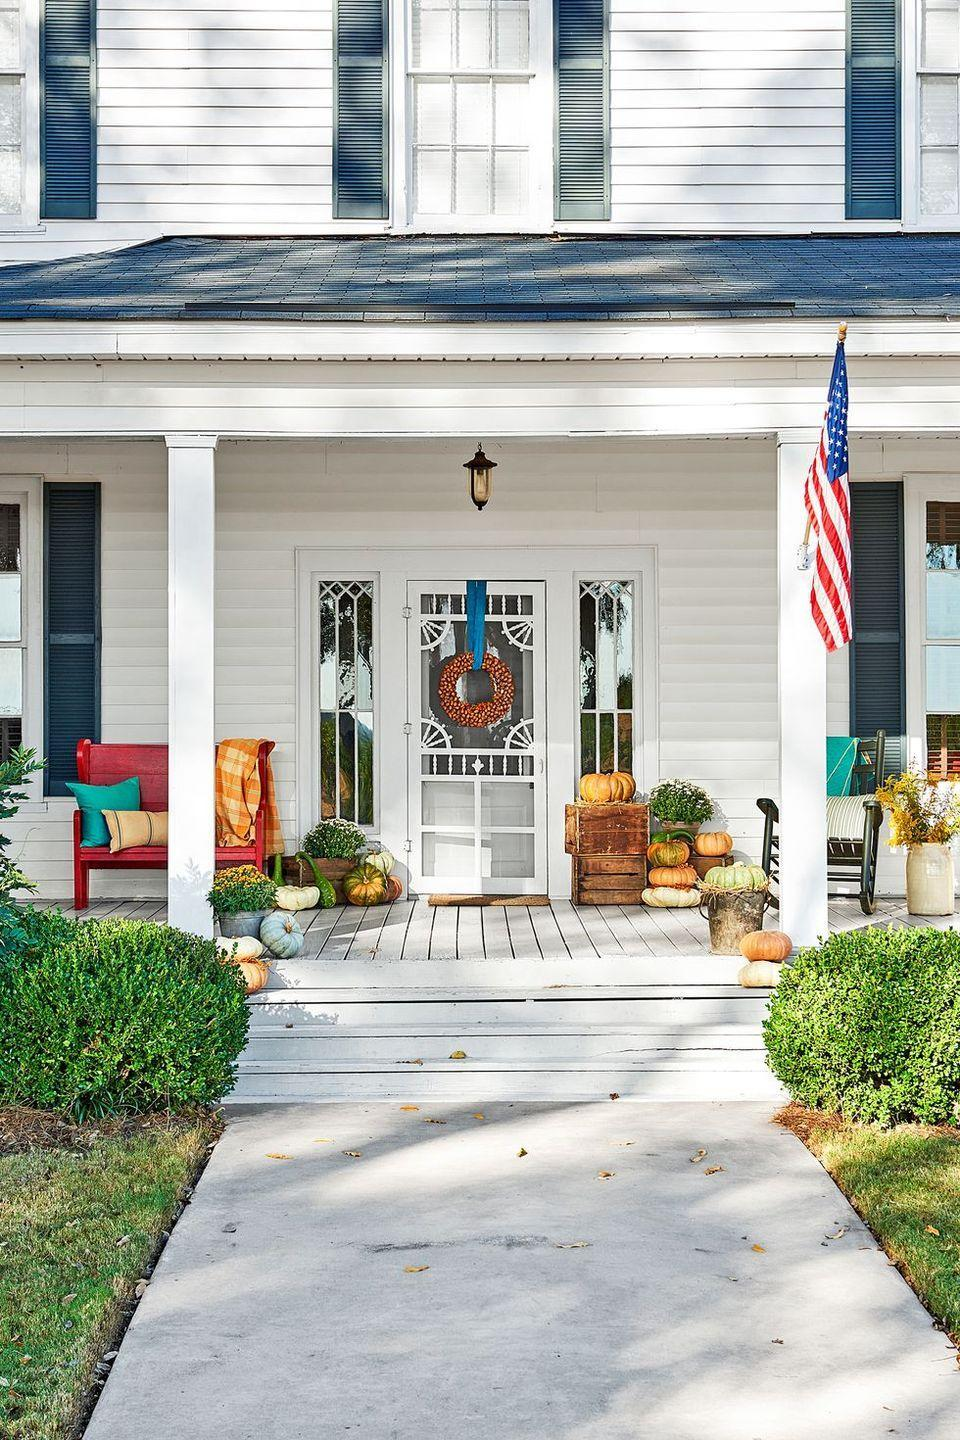 "<p>If you want to take more a general fall approach instead of making your front porch too Halloween-centric, take note from this house at Pearson Farm. Add a ton of pumpkins (bonus points for using apple crates as a pedestal) and then hang your fall wreath with a bright ribbon. </p><p><a class=""link rapid-noclick-resp"" href=""https://www.amazon.com/dp/B07TVHC9L7/ref=sspa_dk_detail_6?tag=syn-yahoo-20&ascsubtag=%5Bartid%7C10057.g.2554%5Bsrc%7Cyahoo-us"" rel=""nofollow noopener"" target=""_blank"" data-ylk=""slk:BUY NOW"">BUY NOW</a> <strong><em>Decorative Fall Crates, $50</em></strong></p>"